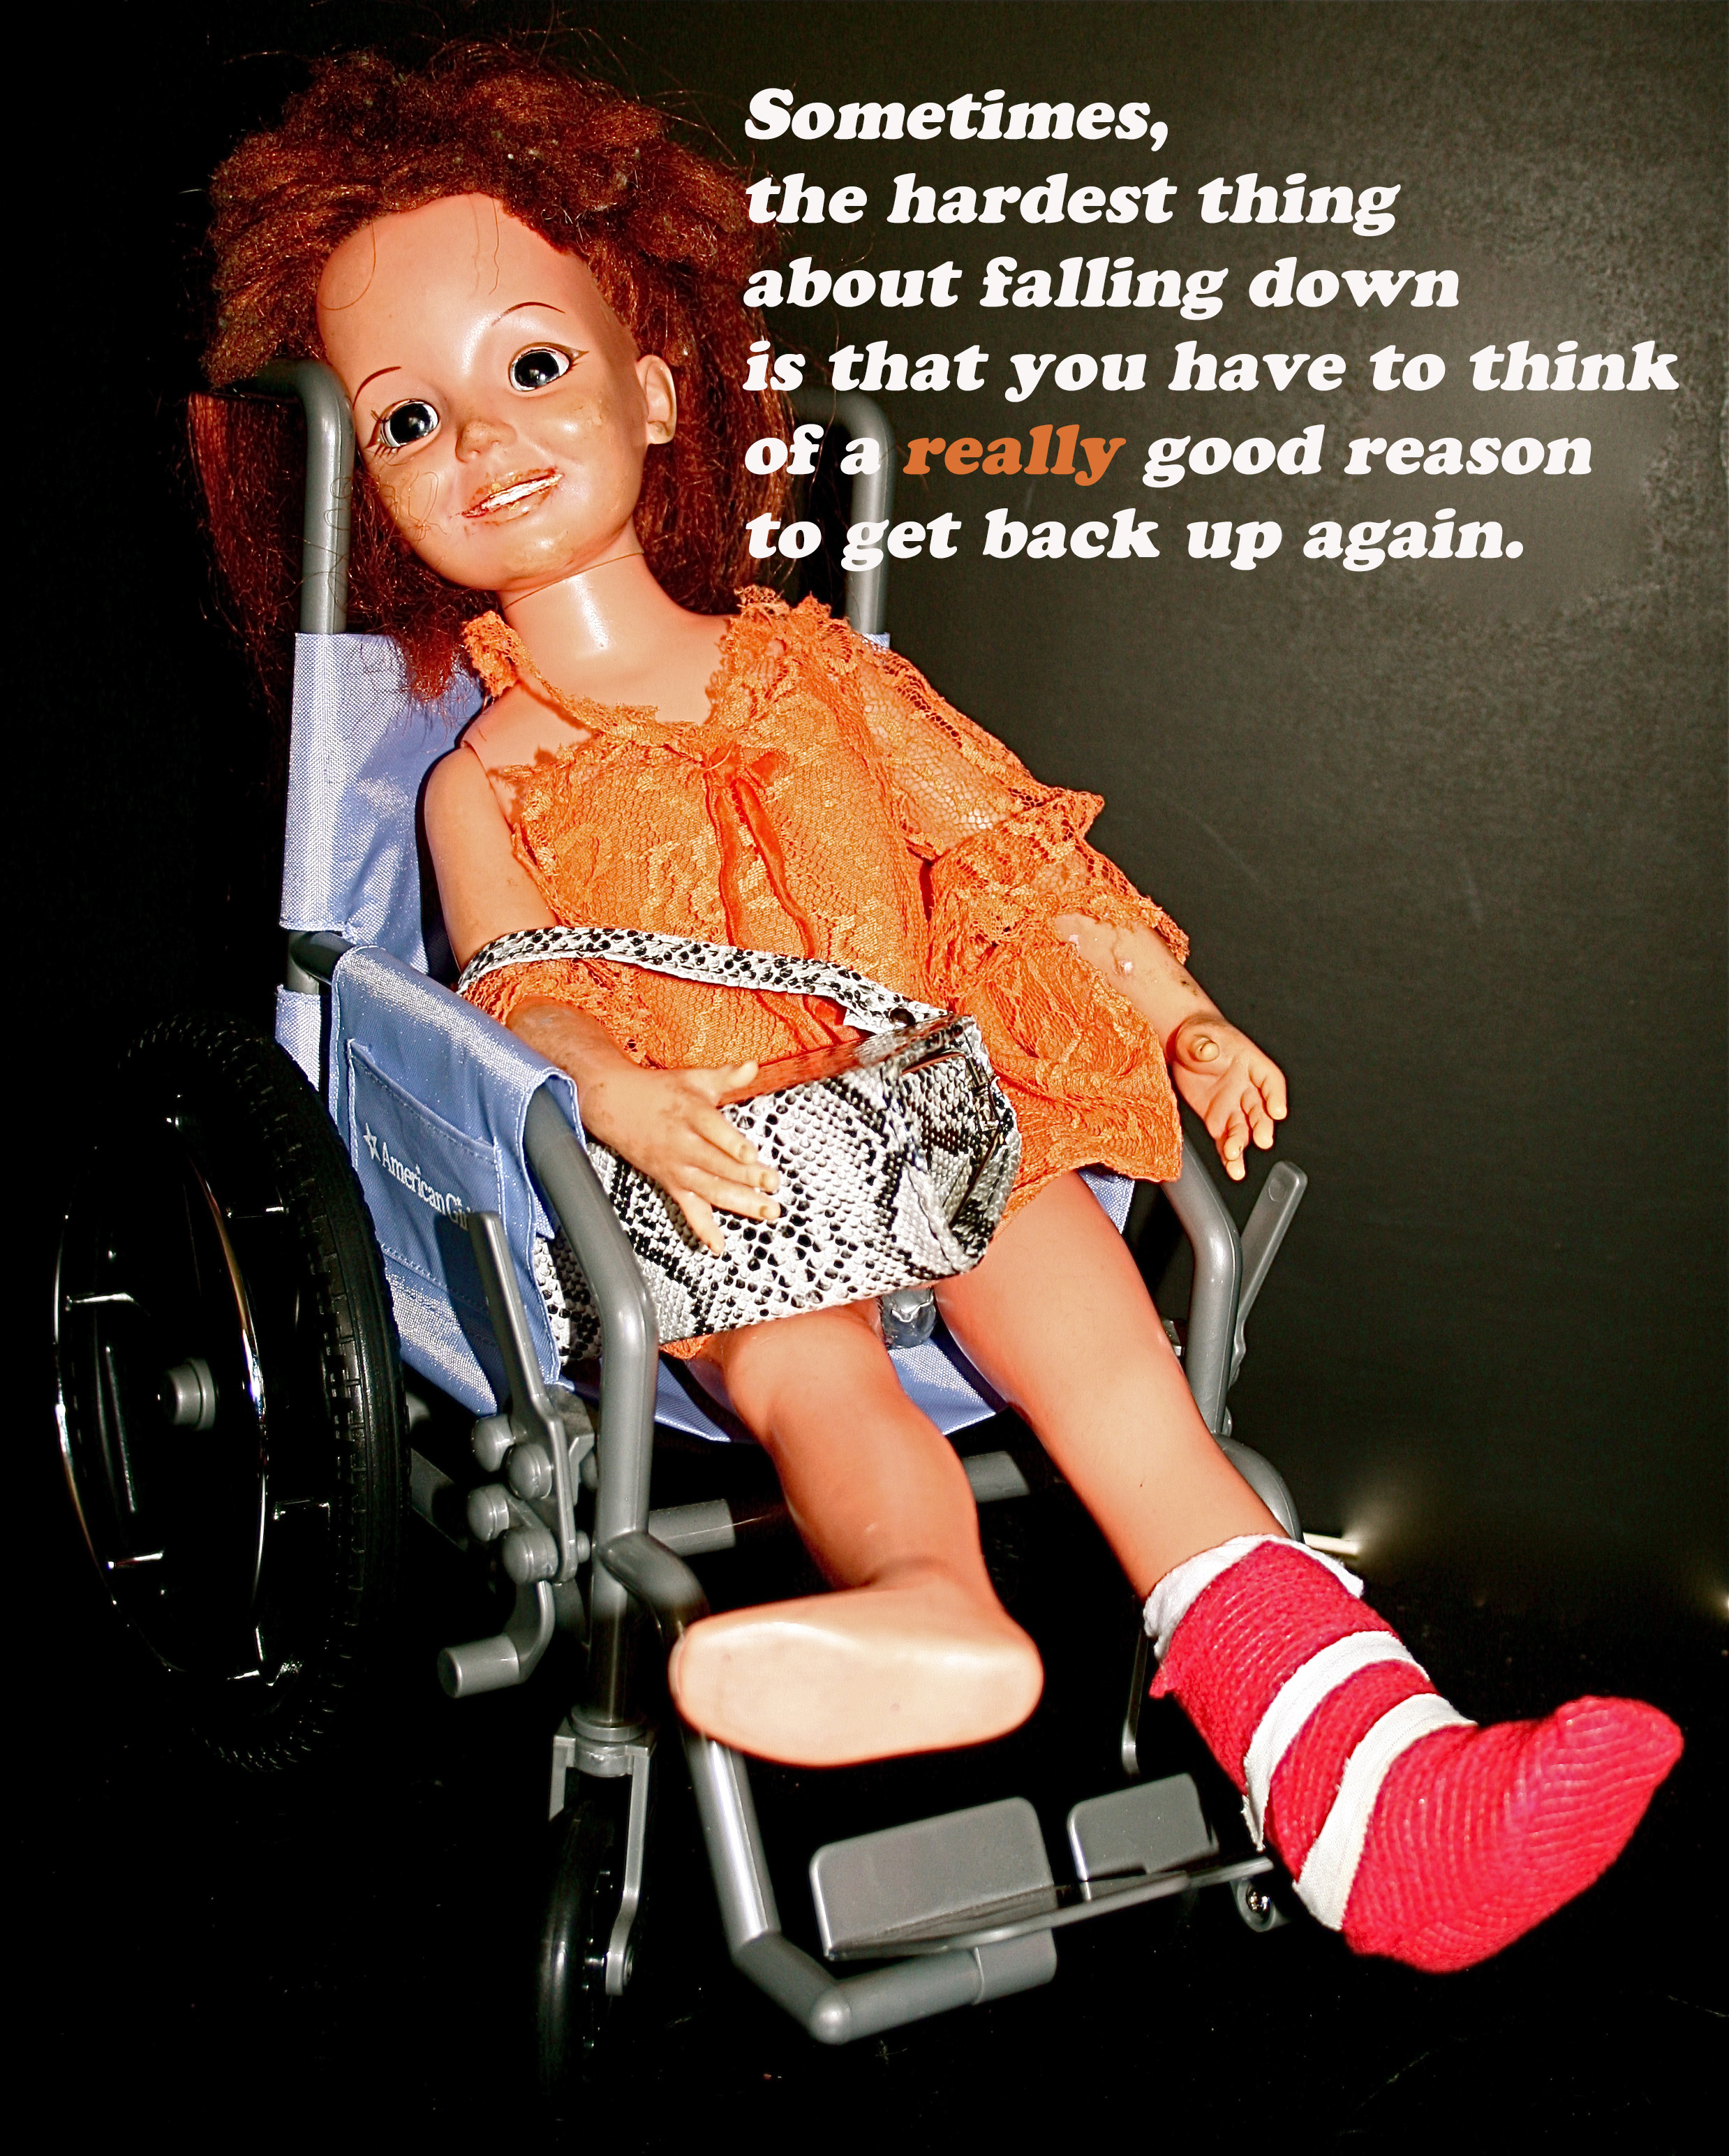 Truths By Crissy: Falling Down